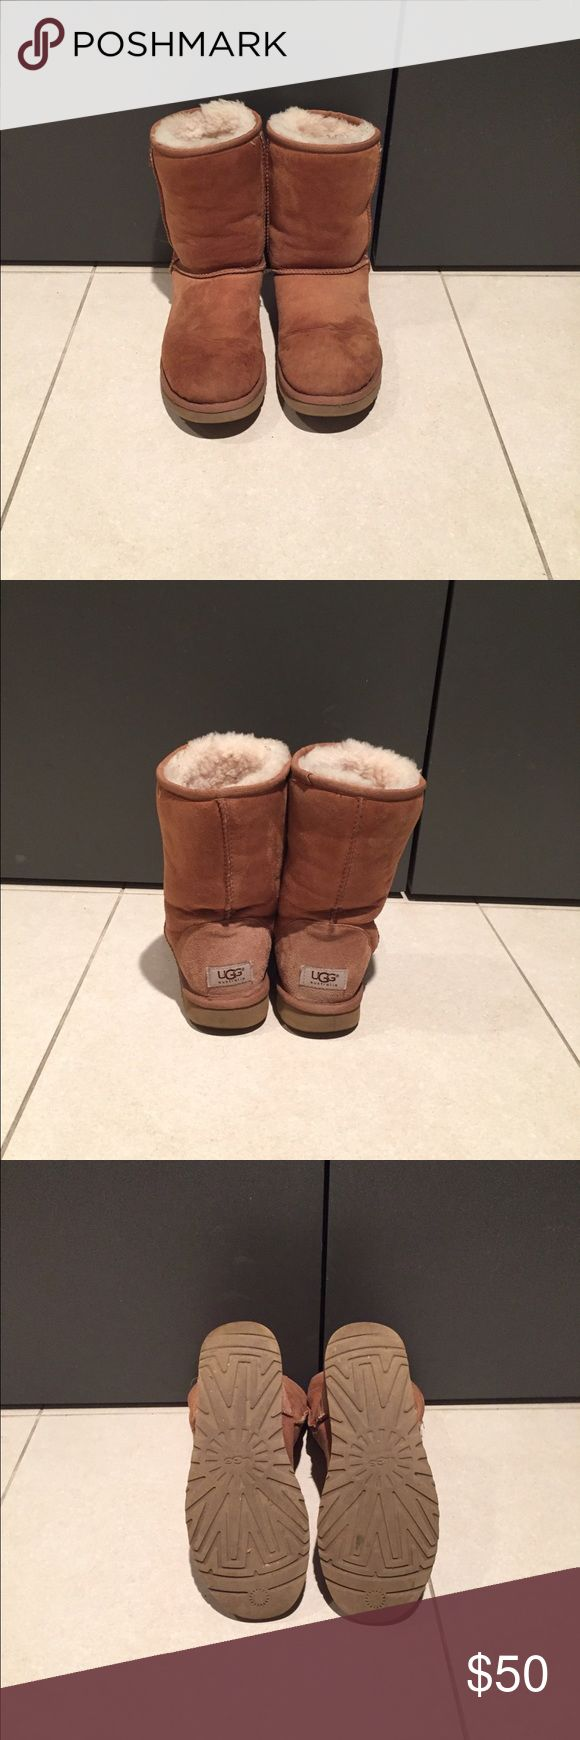 Classic short UGG. Size 8. Color: Chestnut. Classic short UGG. Size 8. Color: Chestnut. UGG Shoes Winter & Rain Boots